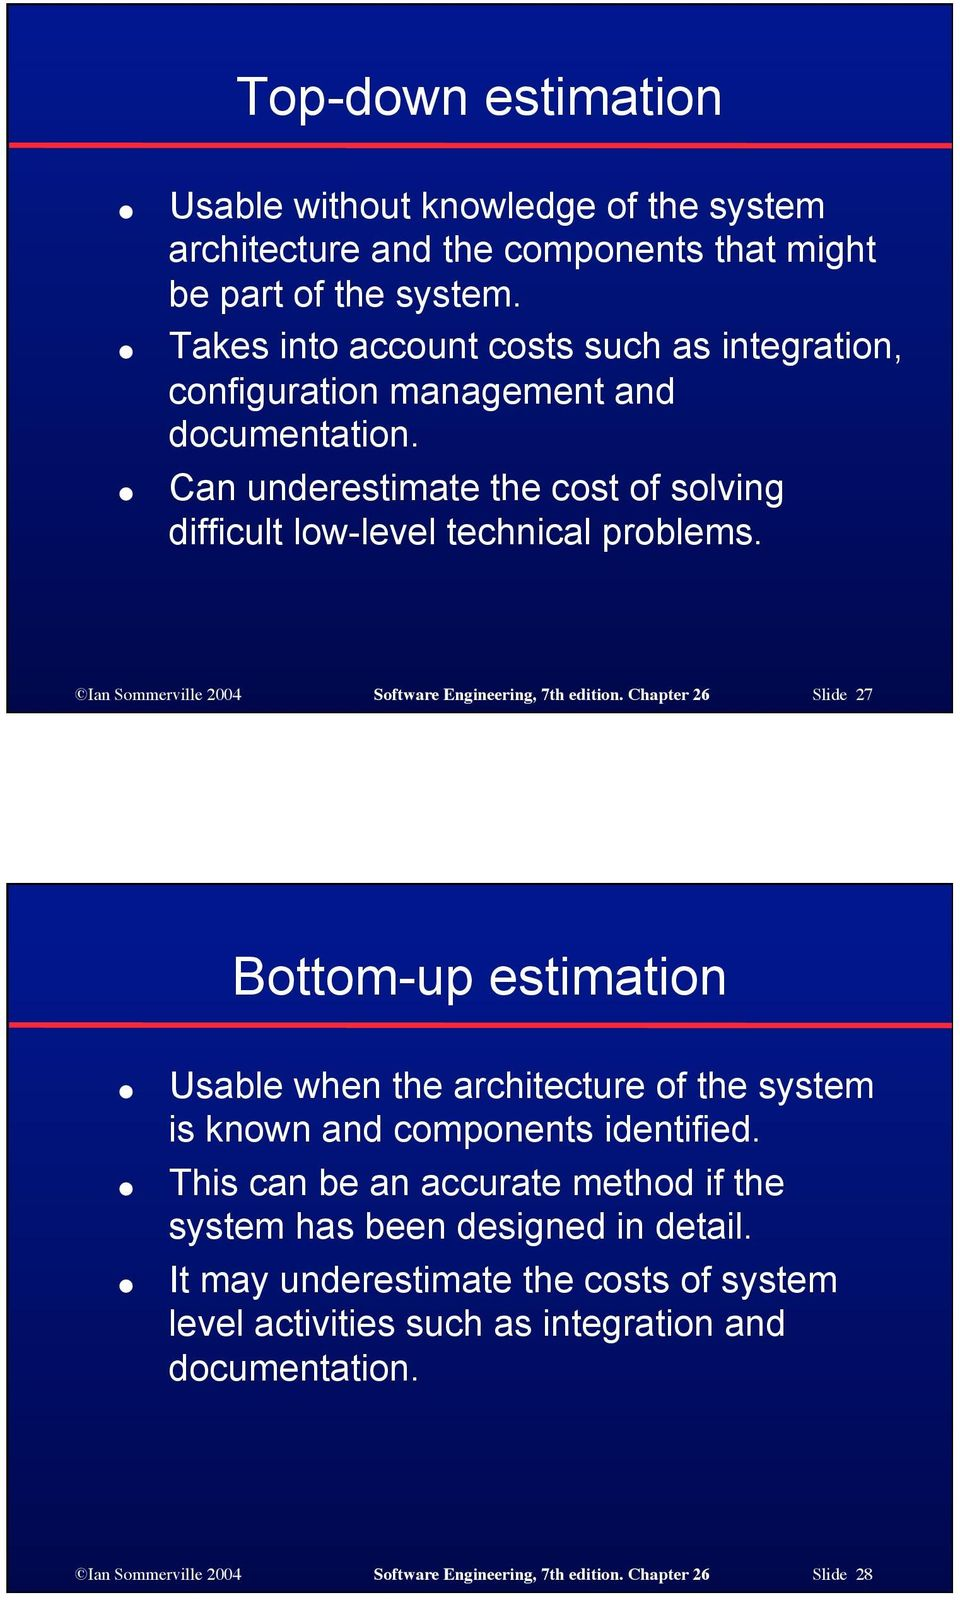 Ian Sommerville 2004 Software Engineering, 7th edition. Chapter 26 Slide 27 Bottom-up estimation Usable when the architecture of the system is known and components identified.